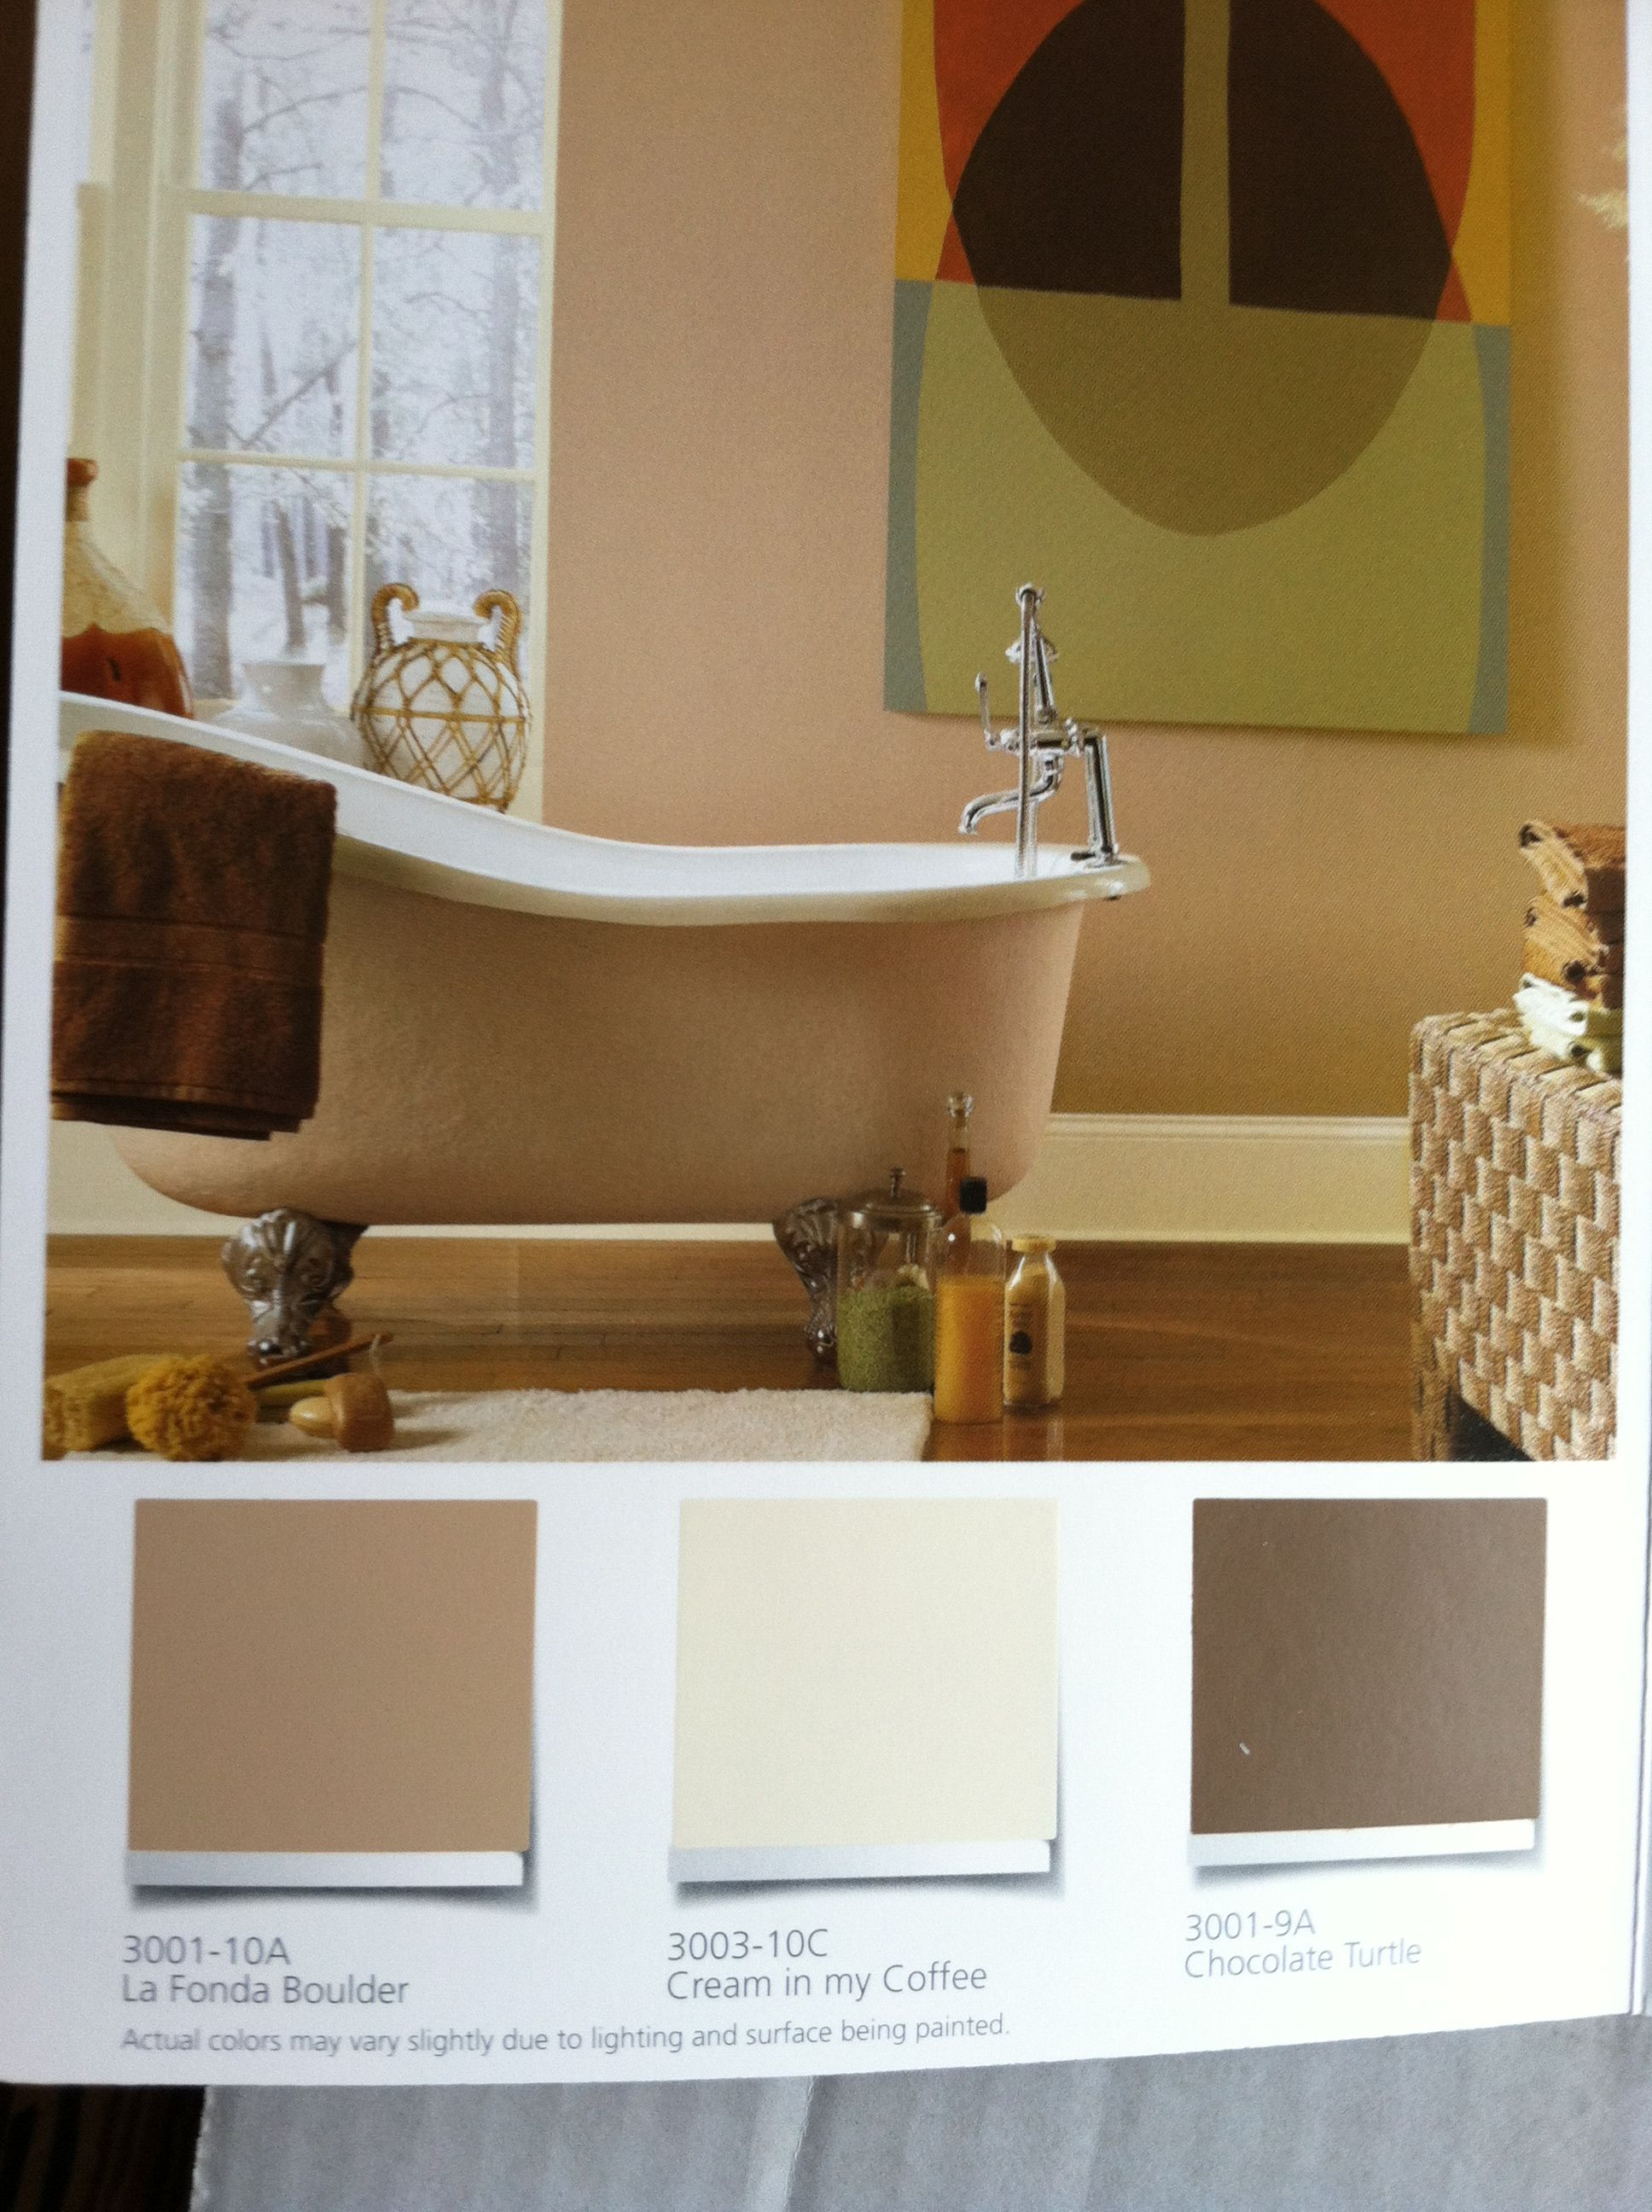 Lowes Paint Colors For Bedrooms Valspar Paint In La Fonda Boulder Cream In My Coffee And